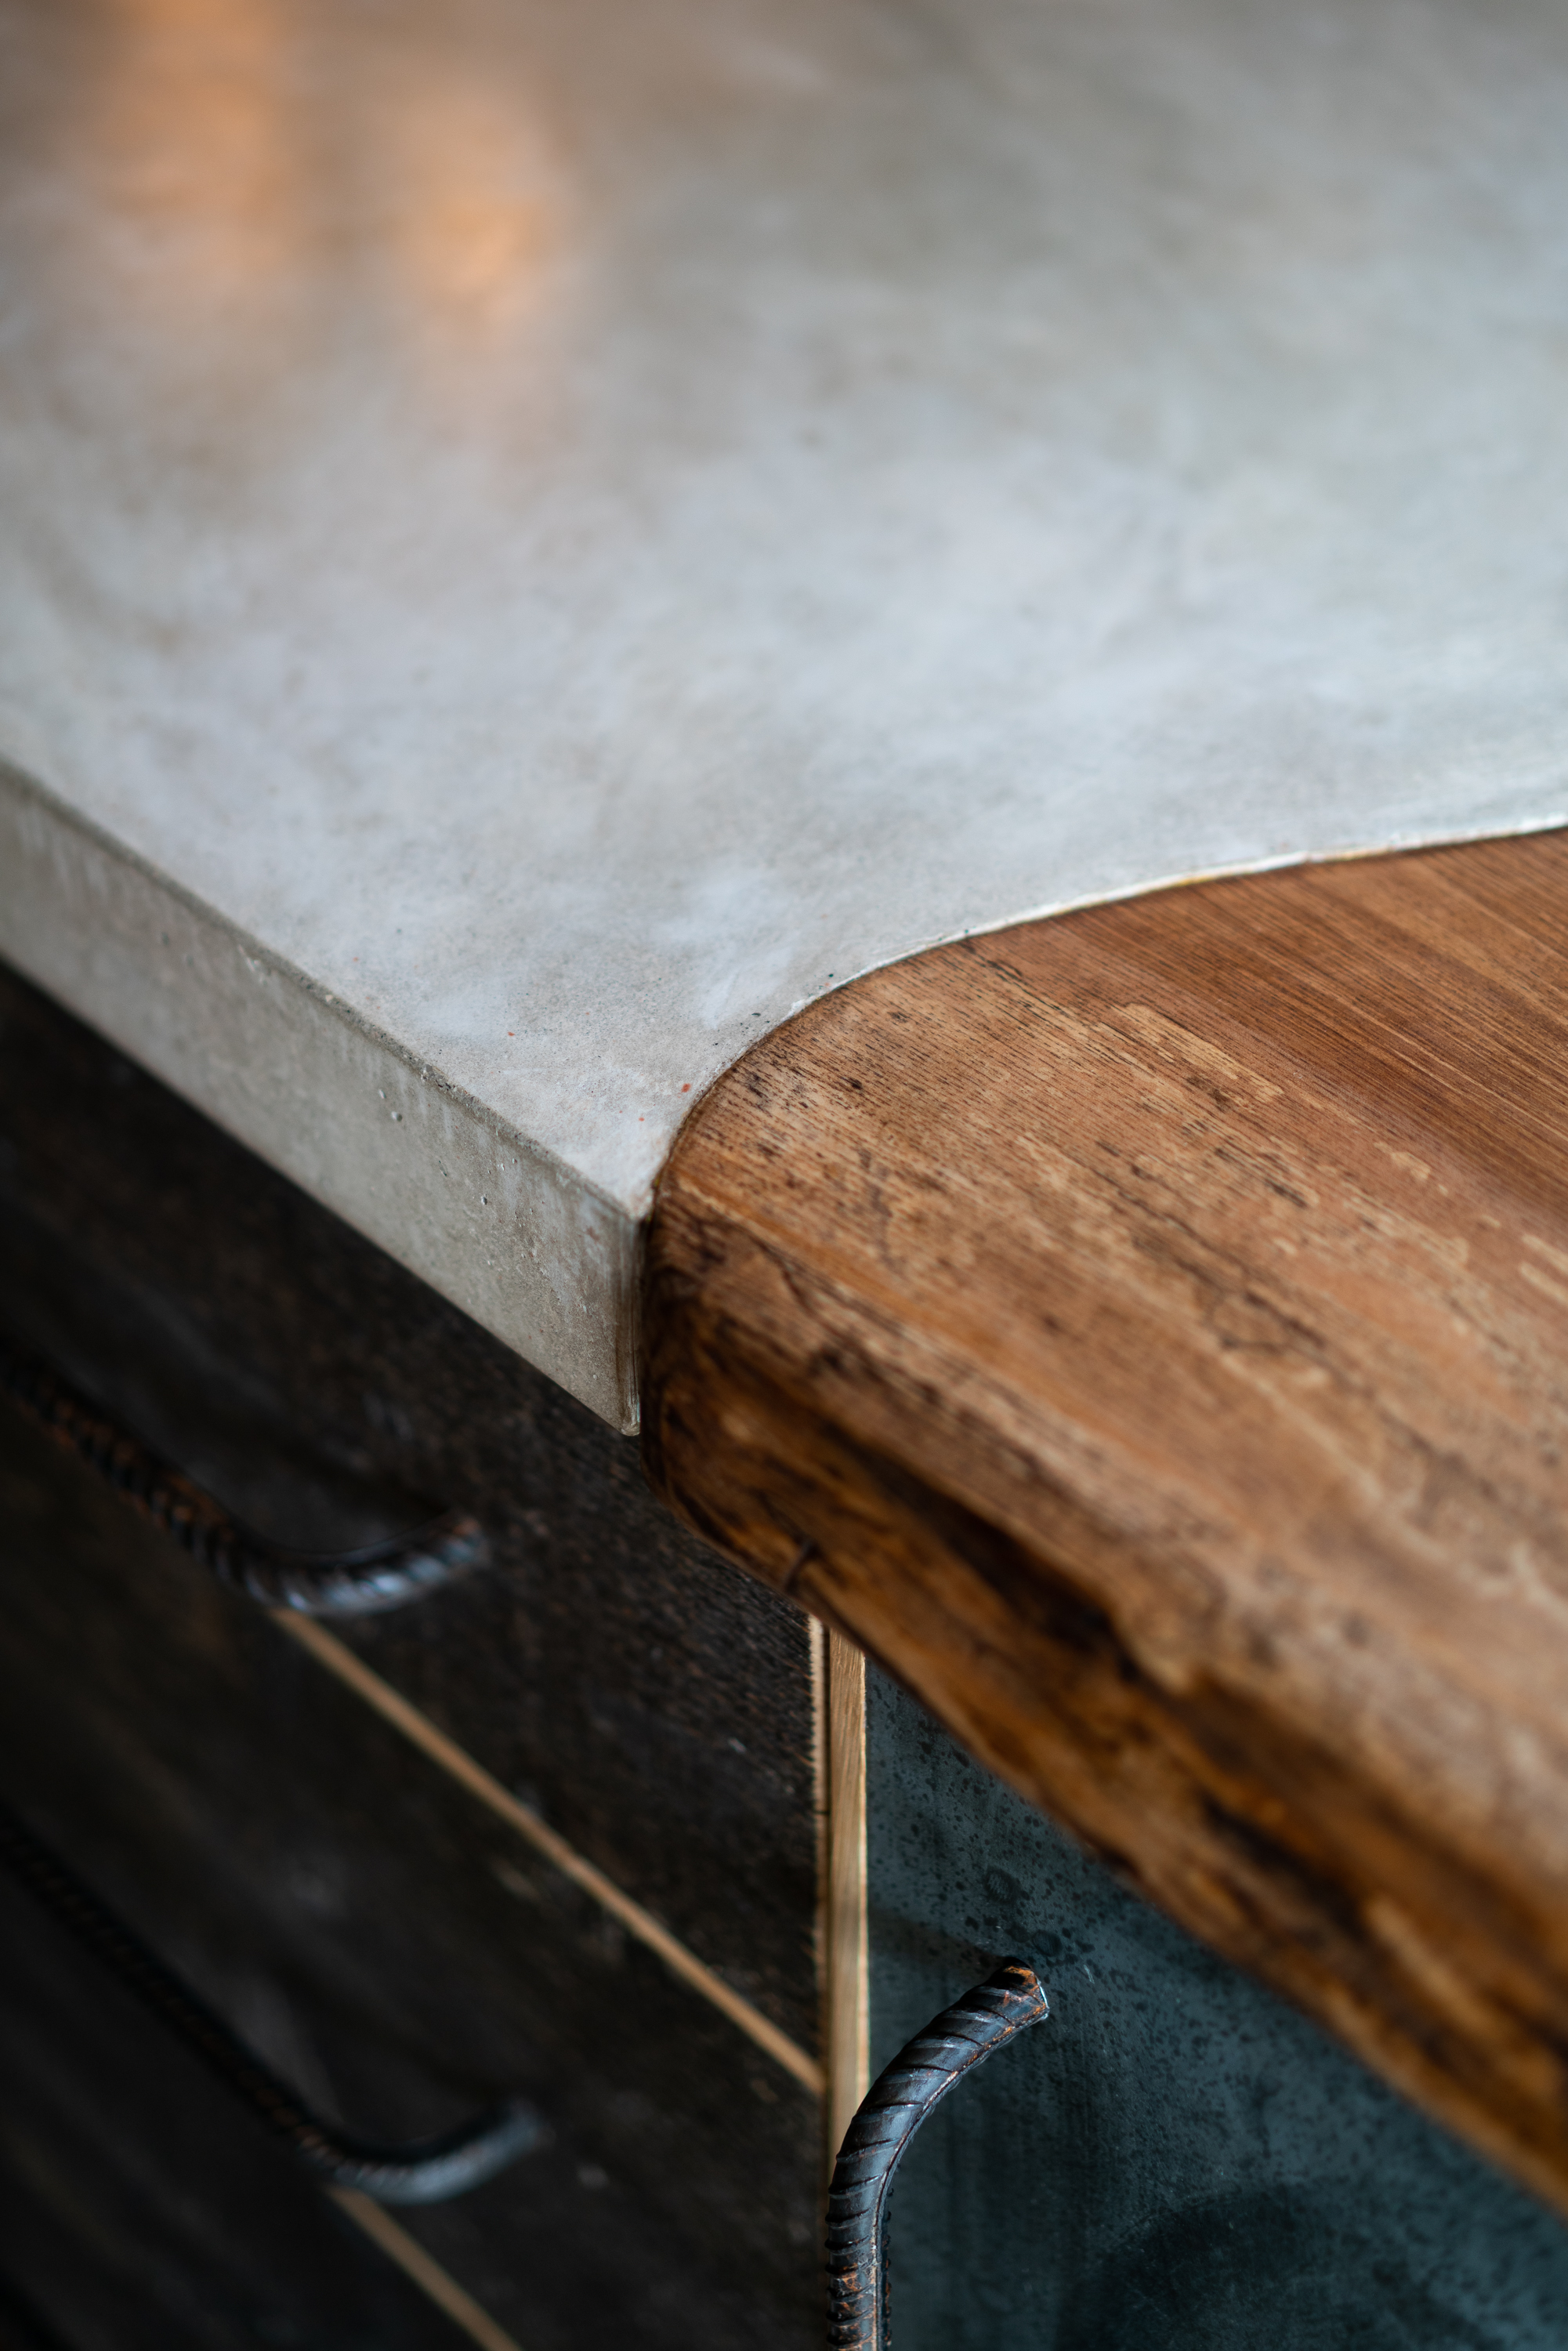 Polished Concrete and Wood Worktop Detail